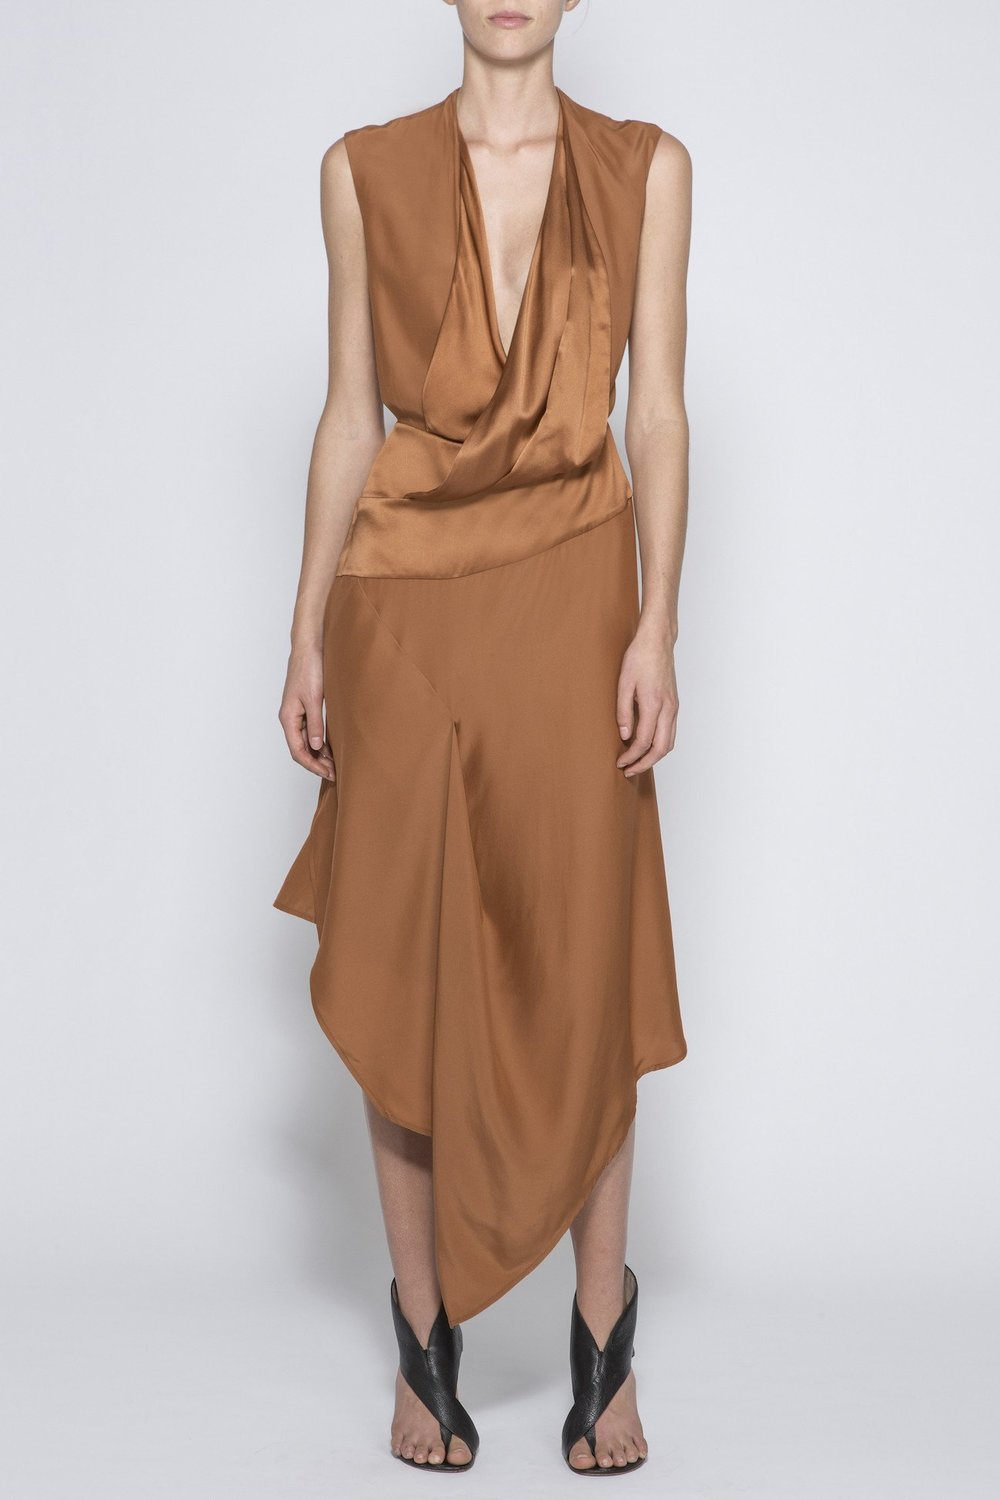 ENNET SILK DRESS. Acler. Was: $495. Now: $347.